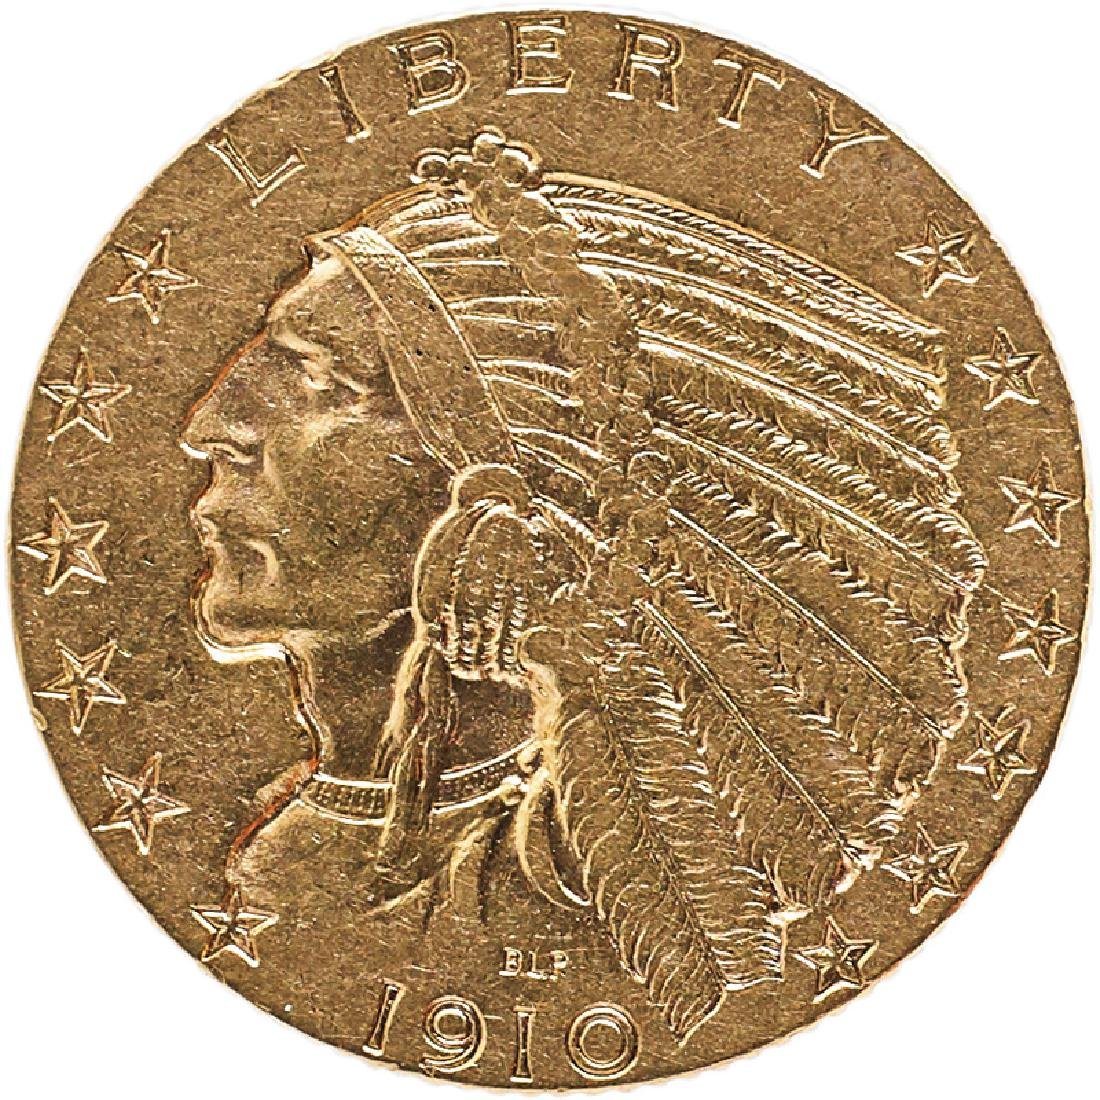 U.S. 1910-S INDIAN $5 GOLD COIN